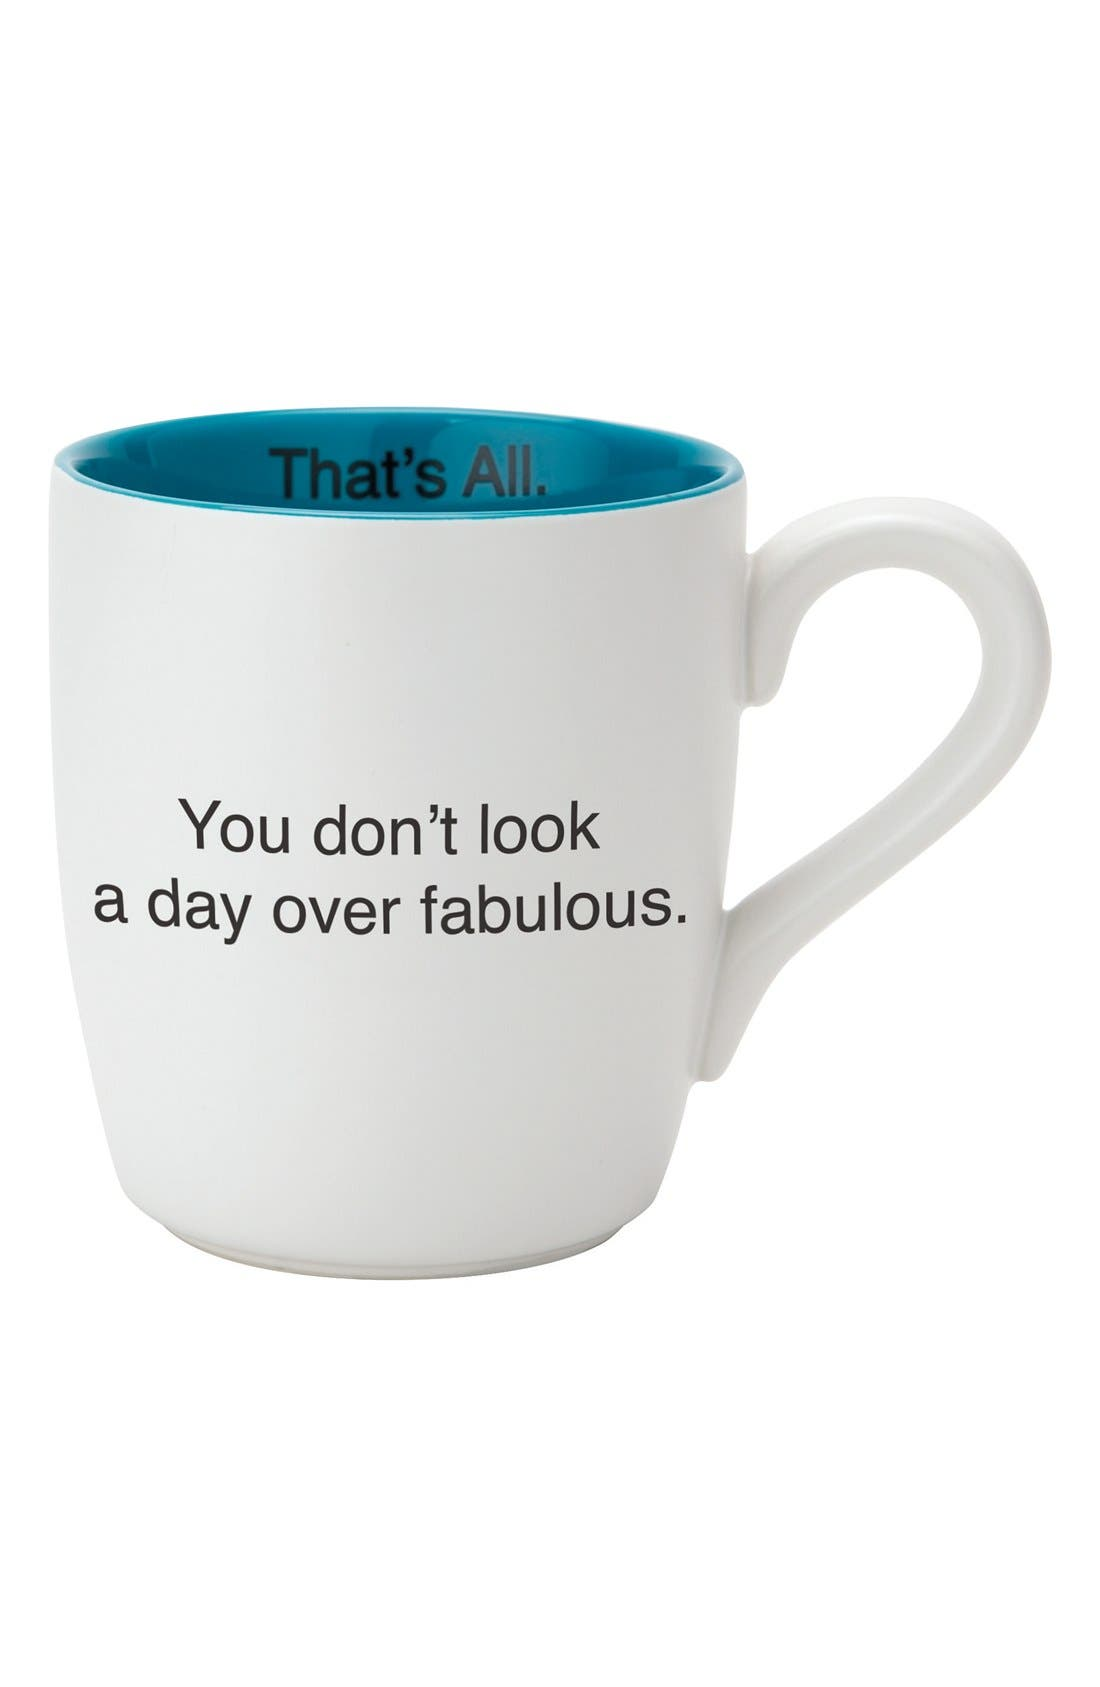 Alternate Image 1 Selected - CB Gift 'Fabulous - That's All' Mug